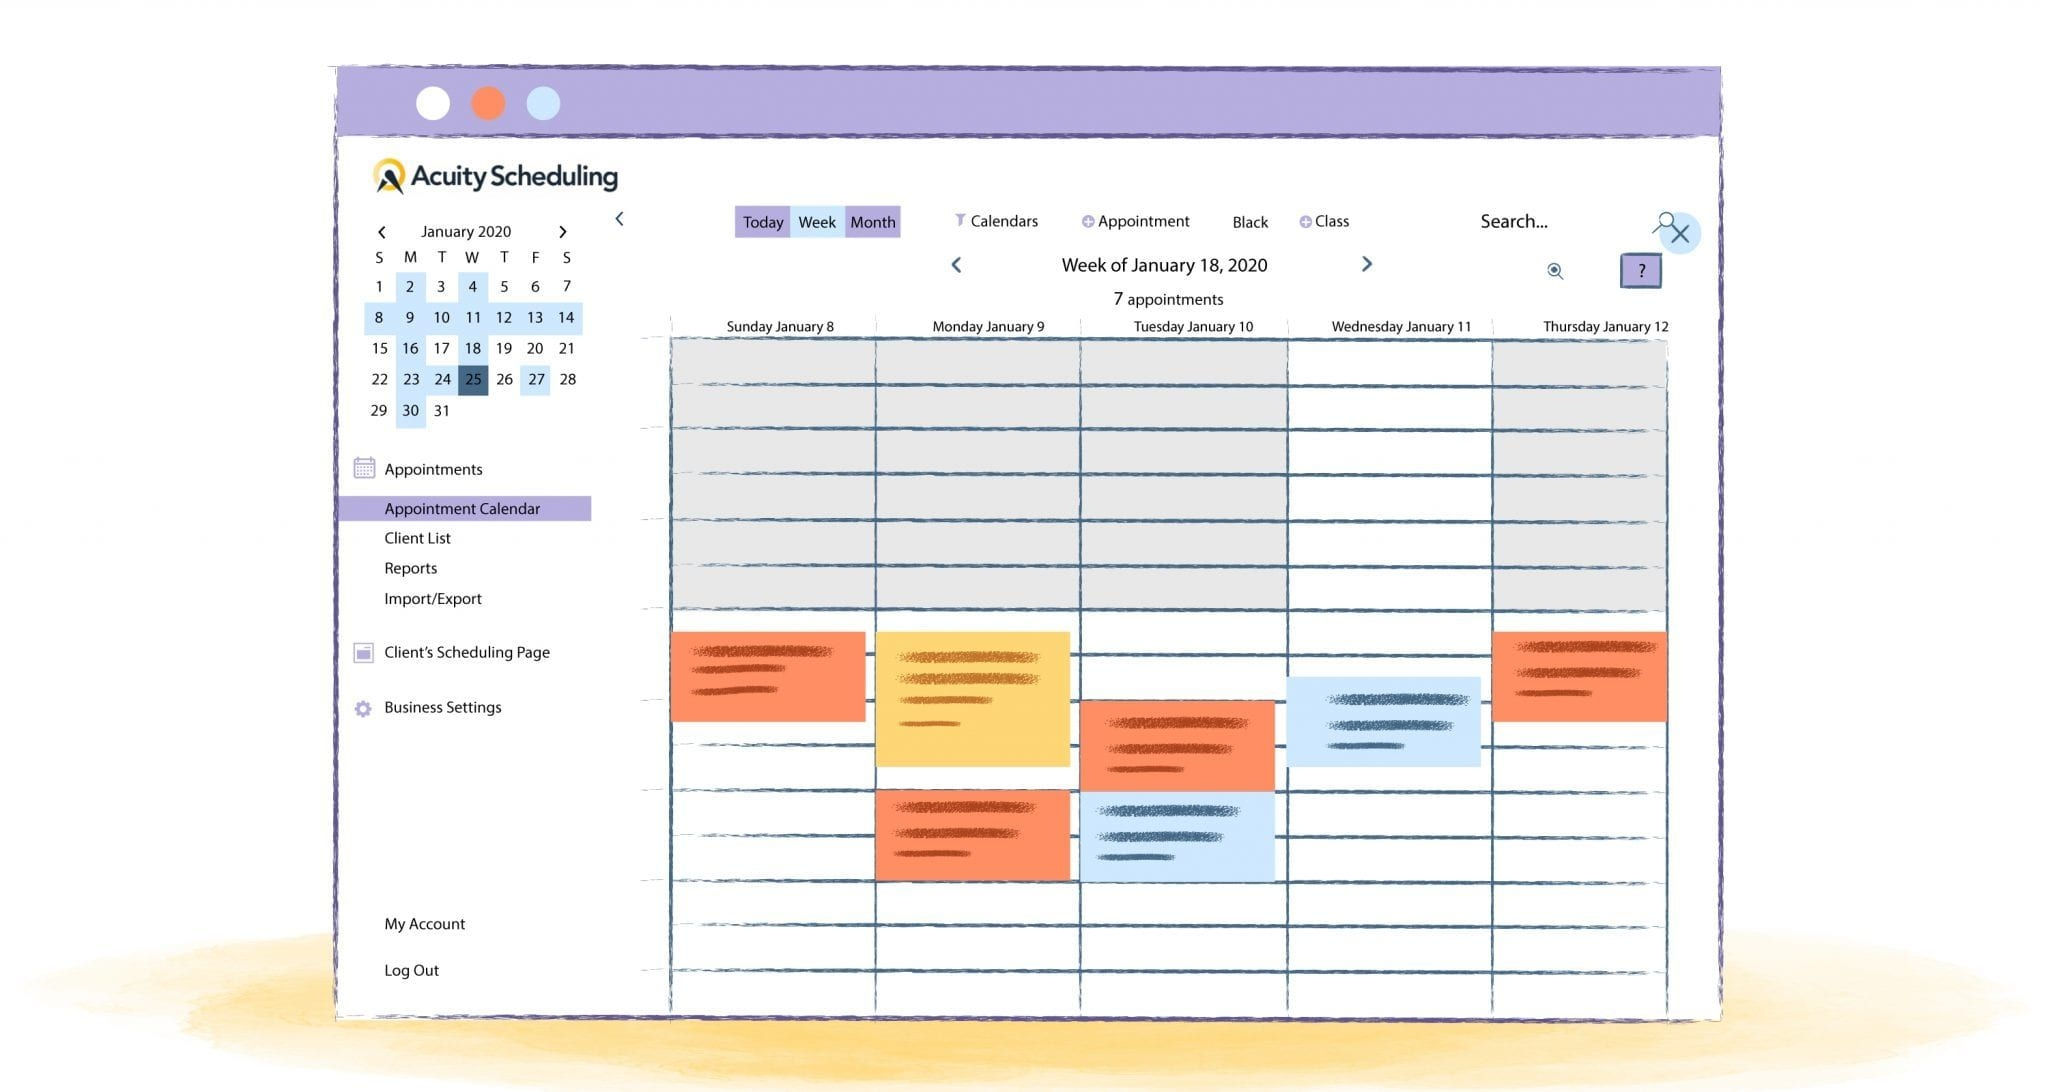 acuity scheduling guide calendar